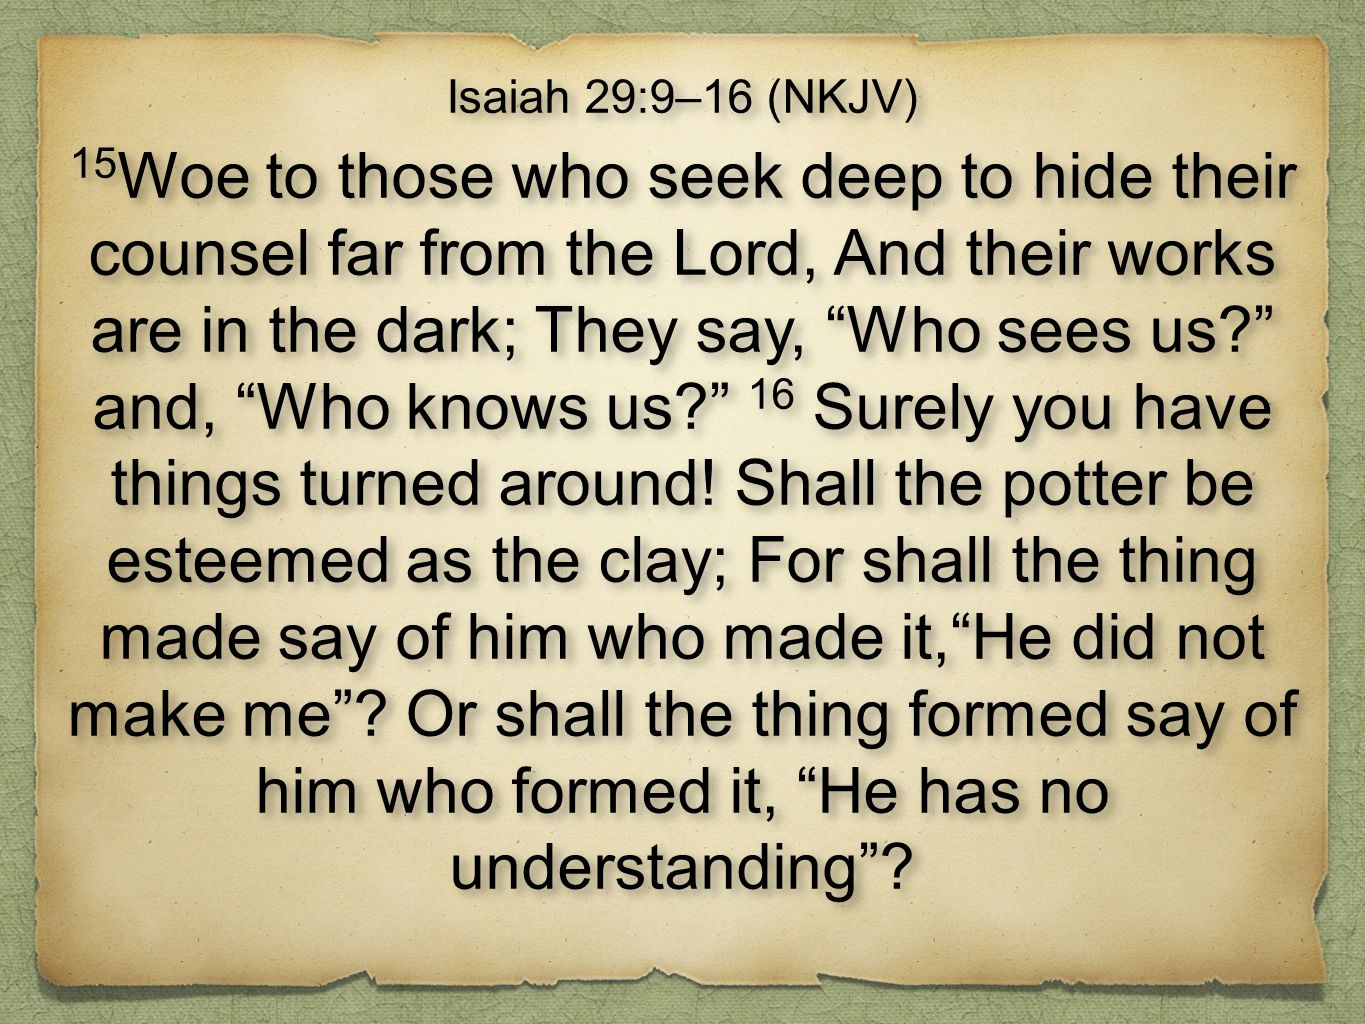 "Isaiah 29:9–16 (NKJV) 15 Woe to those who seek deep to hide their counsel far from the Lord, And their works are in the dark; They say, ""Who sees us?"""